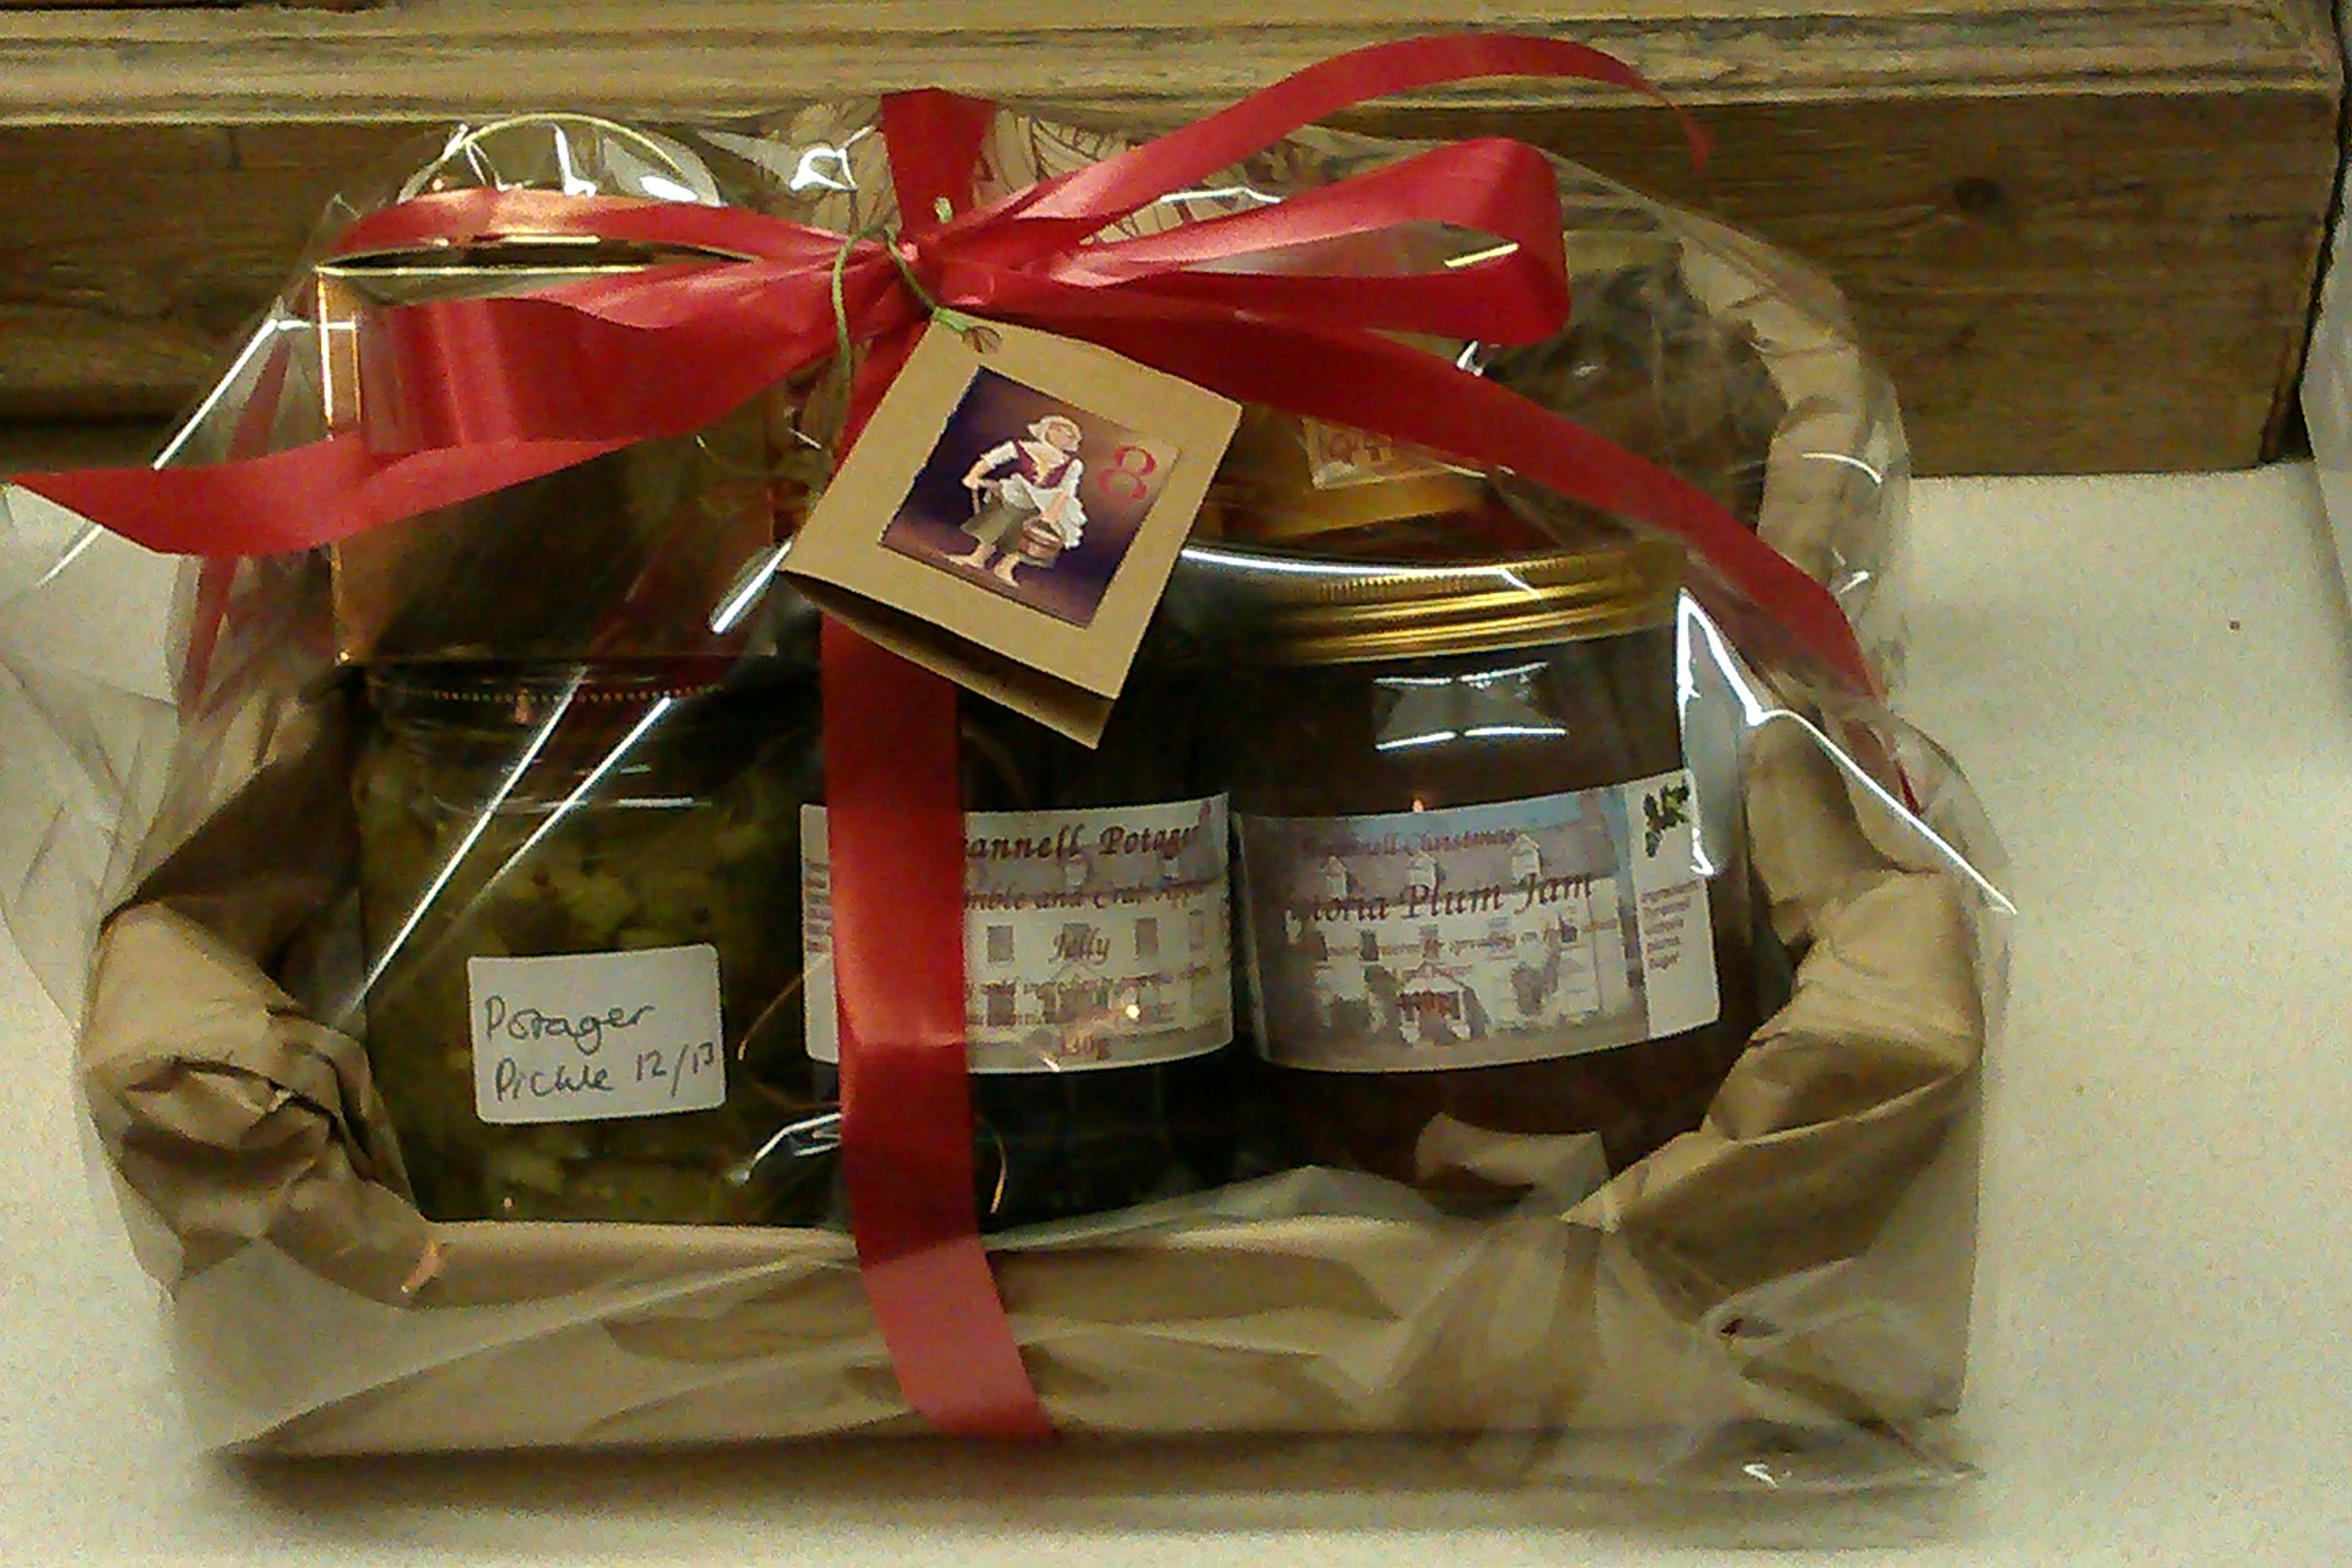 A hamper featuring some preserves of garden produce